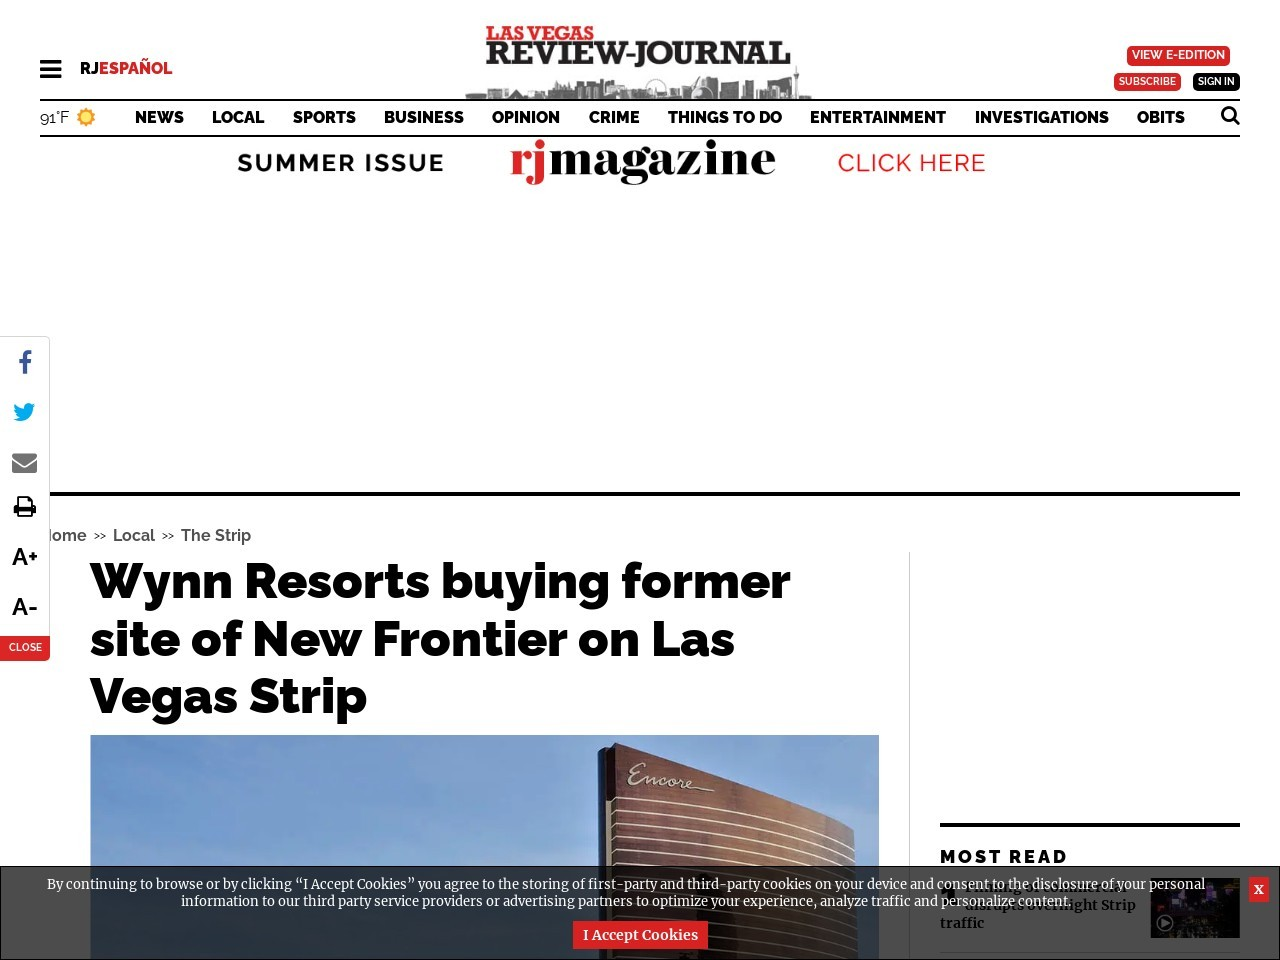 Wynn Resorts buying former site of New Frontier on Las Vegas Strip